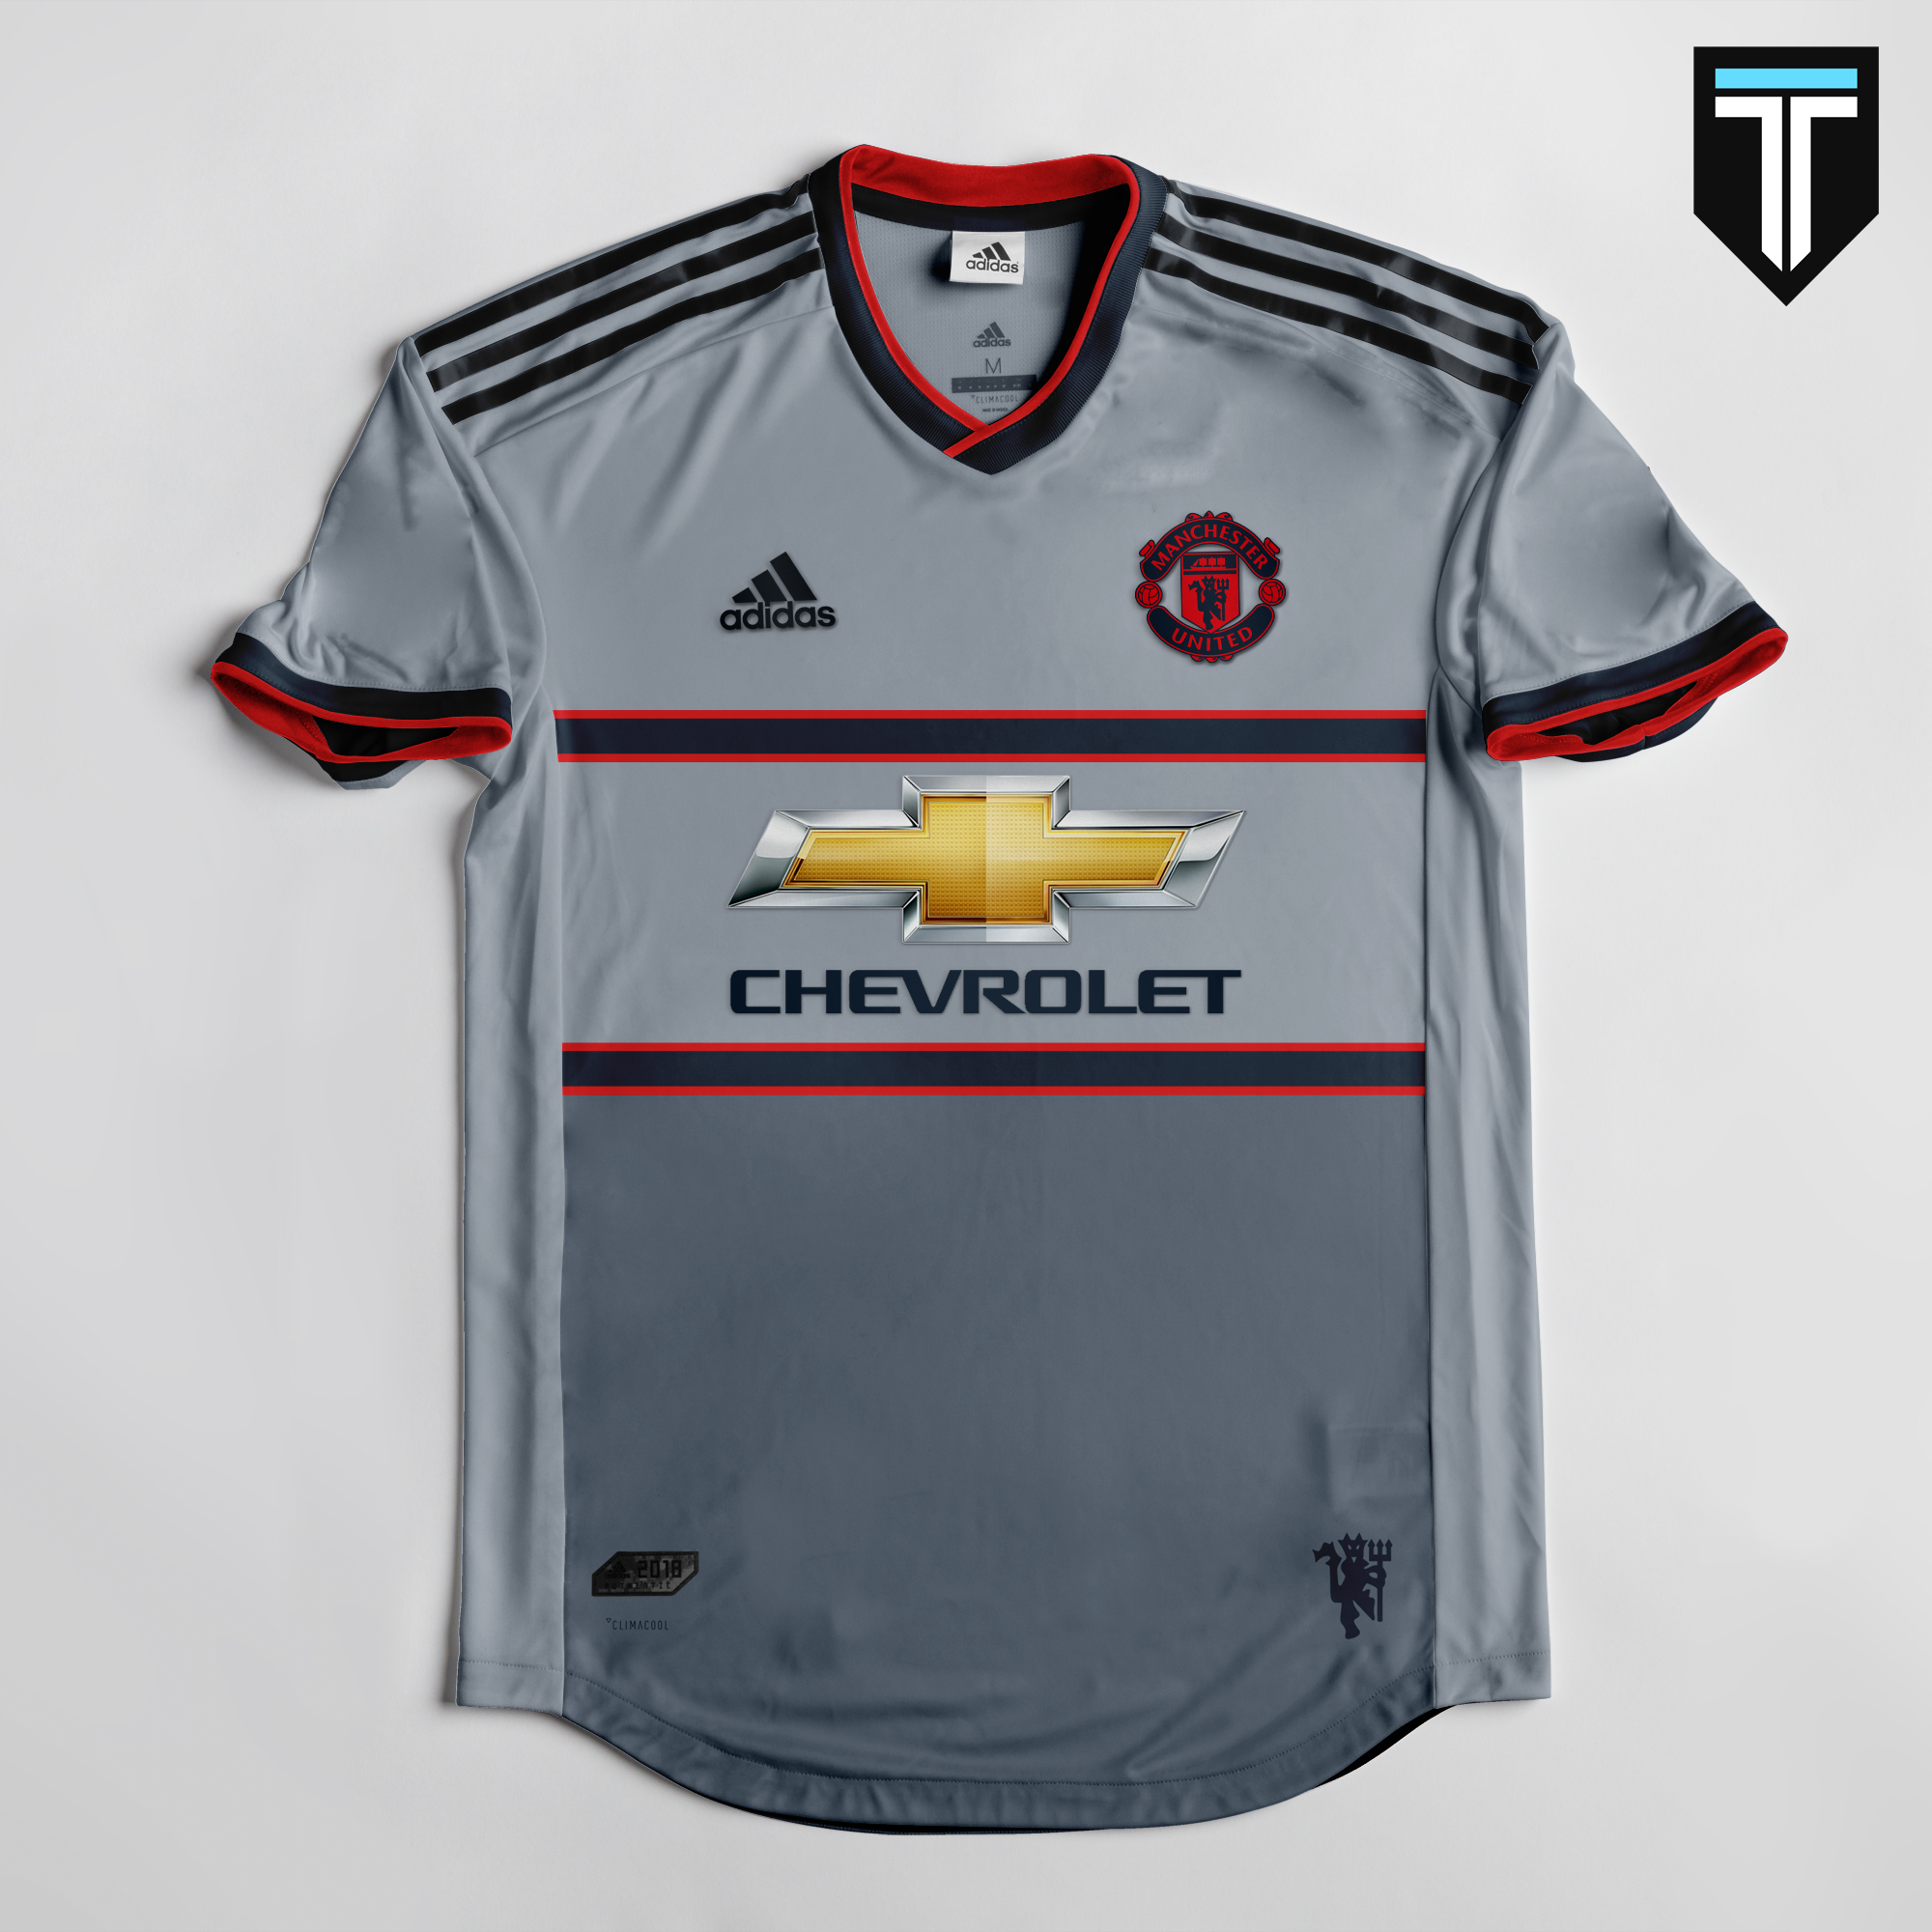 new concept 8c8f2 4f603 Manchester United Third Kit Concept